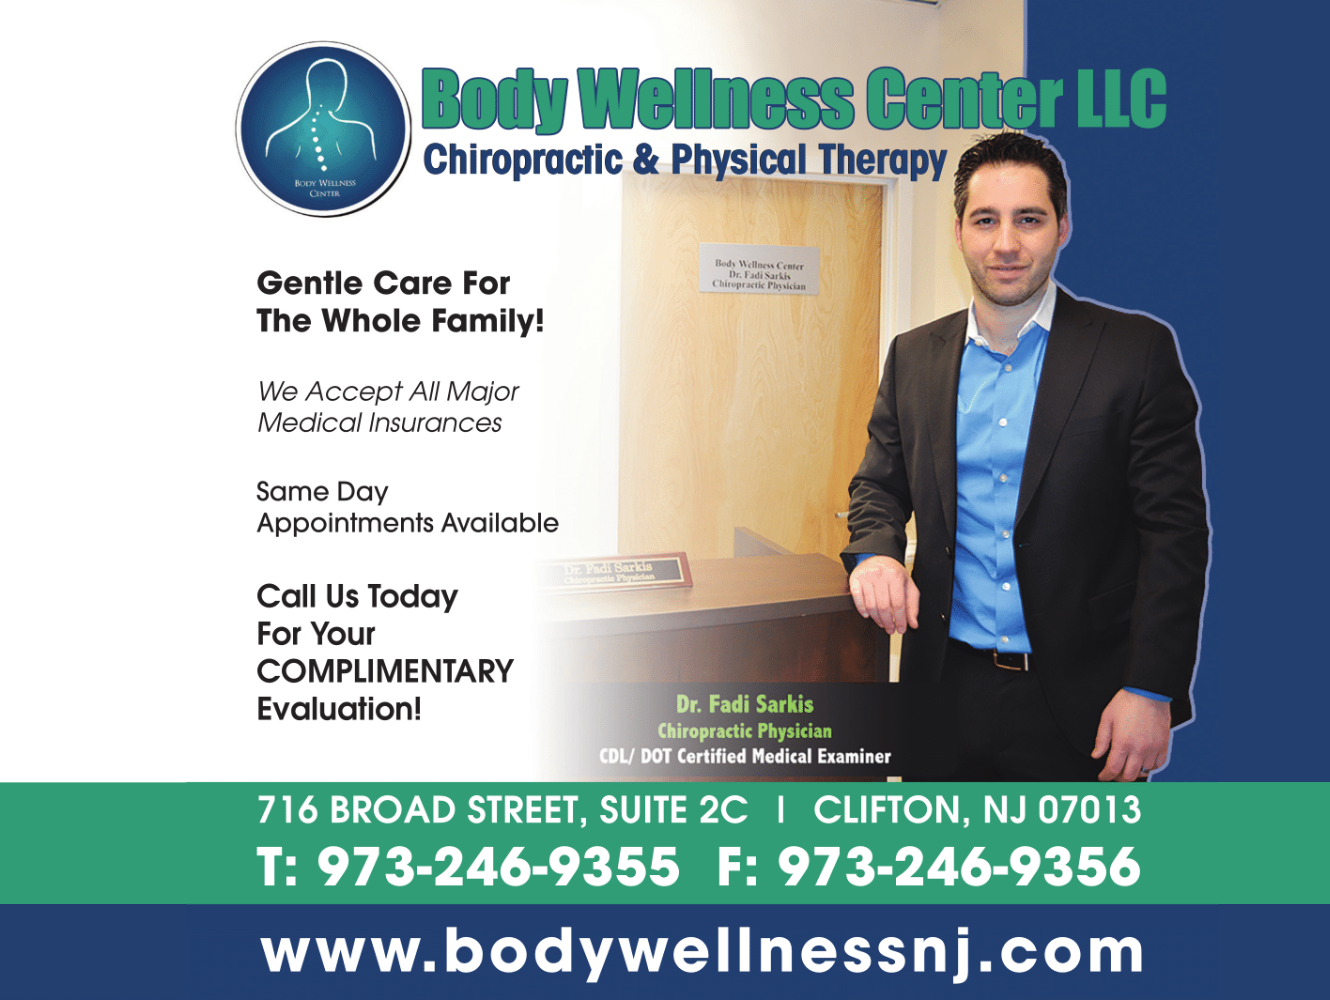 pba197-front-page-body-wellness-center04